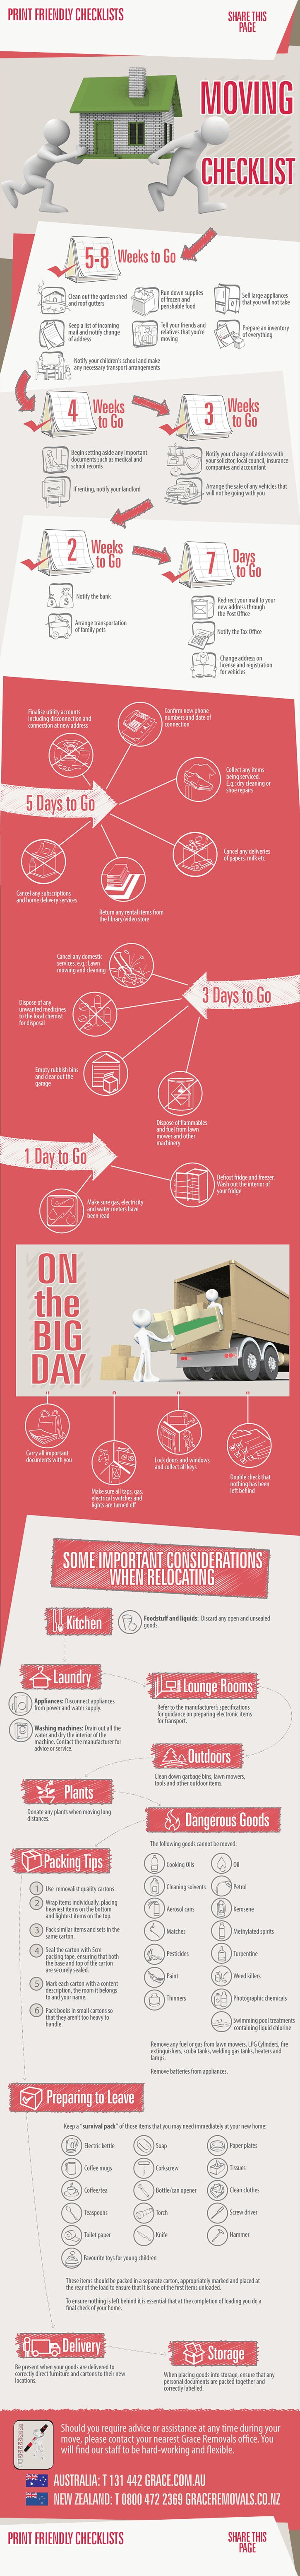 Moving Checklist Infographic - Tips to Help You MoveDuring This Stressful Time.